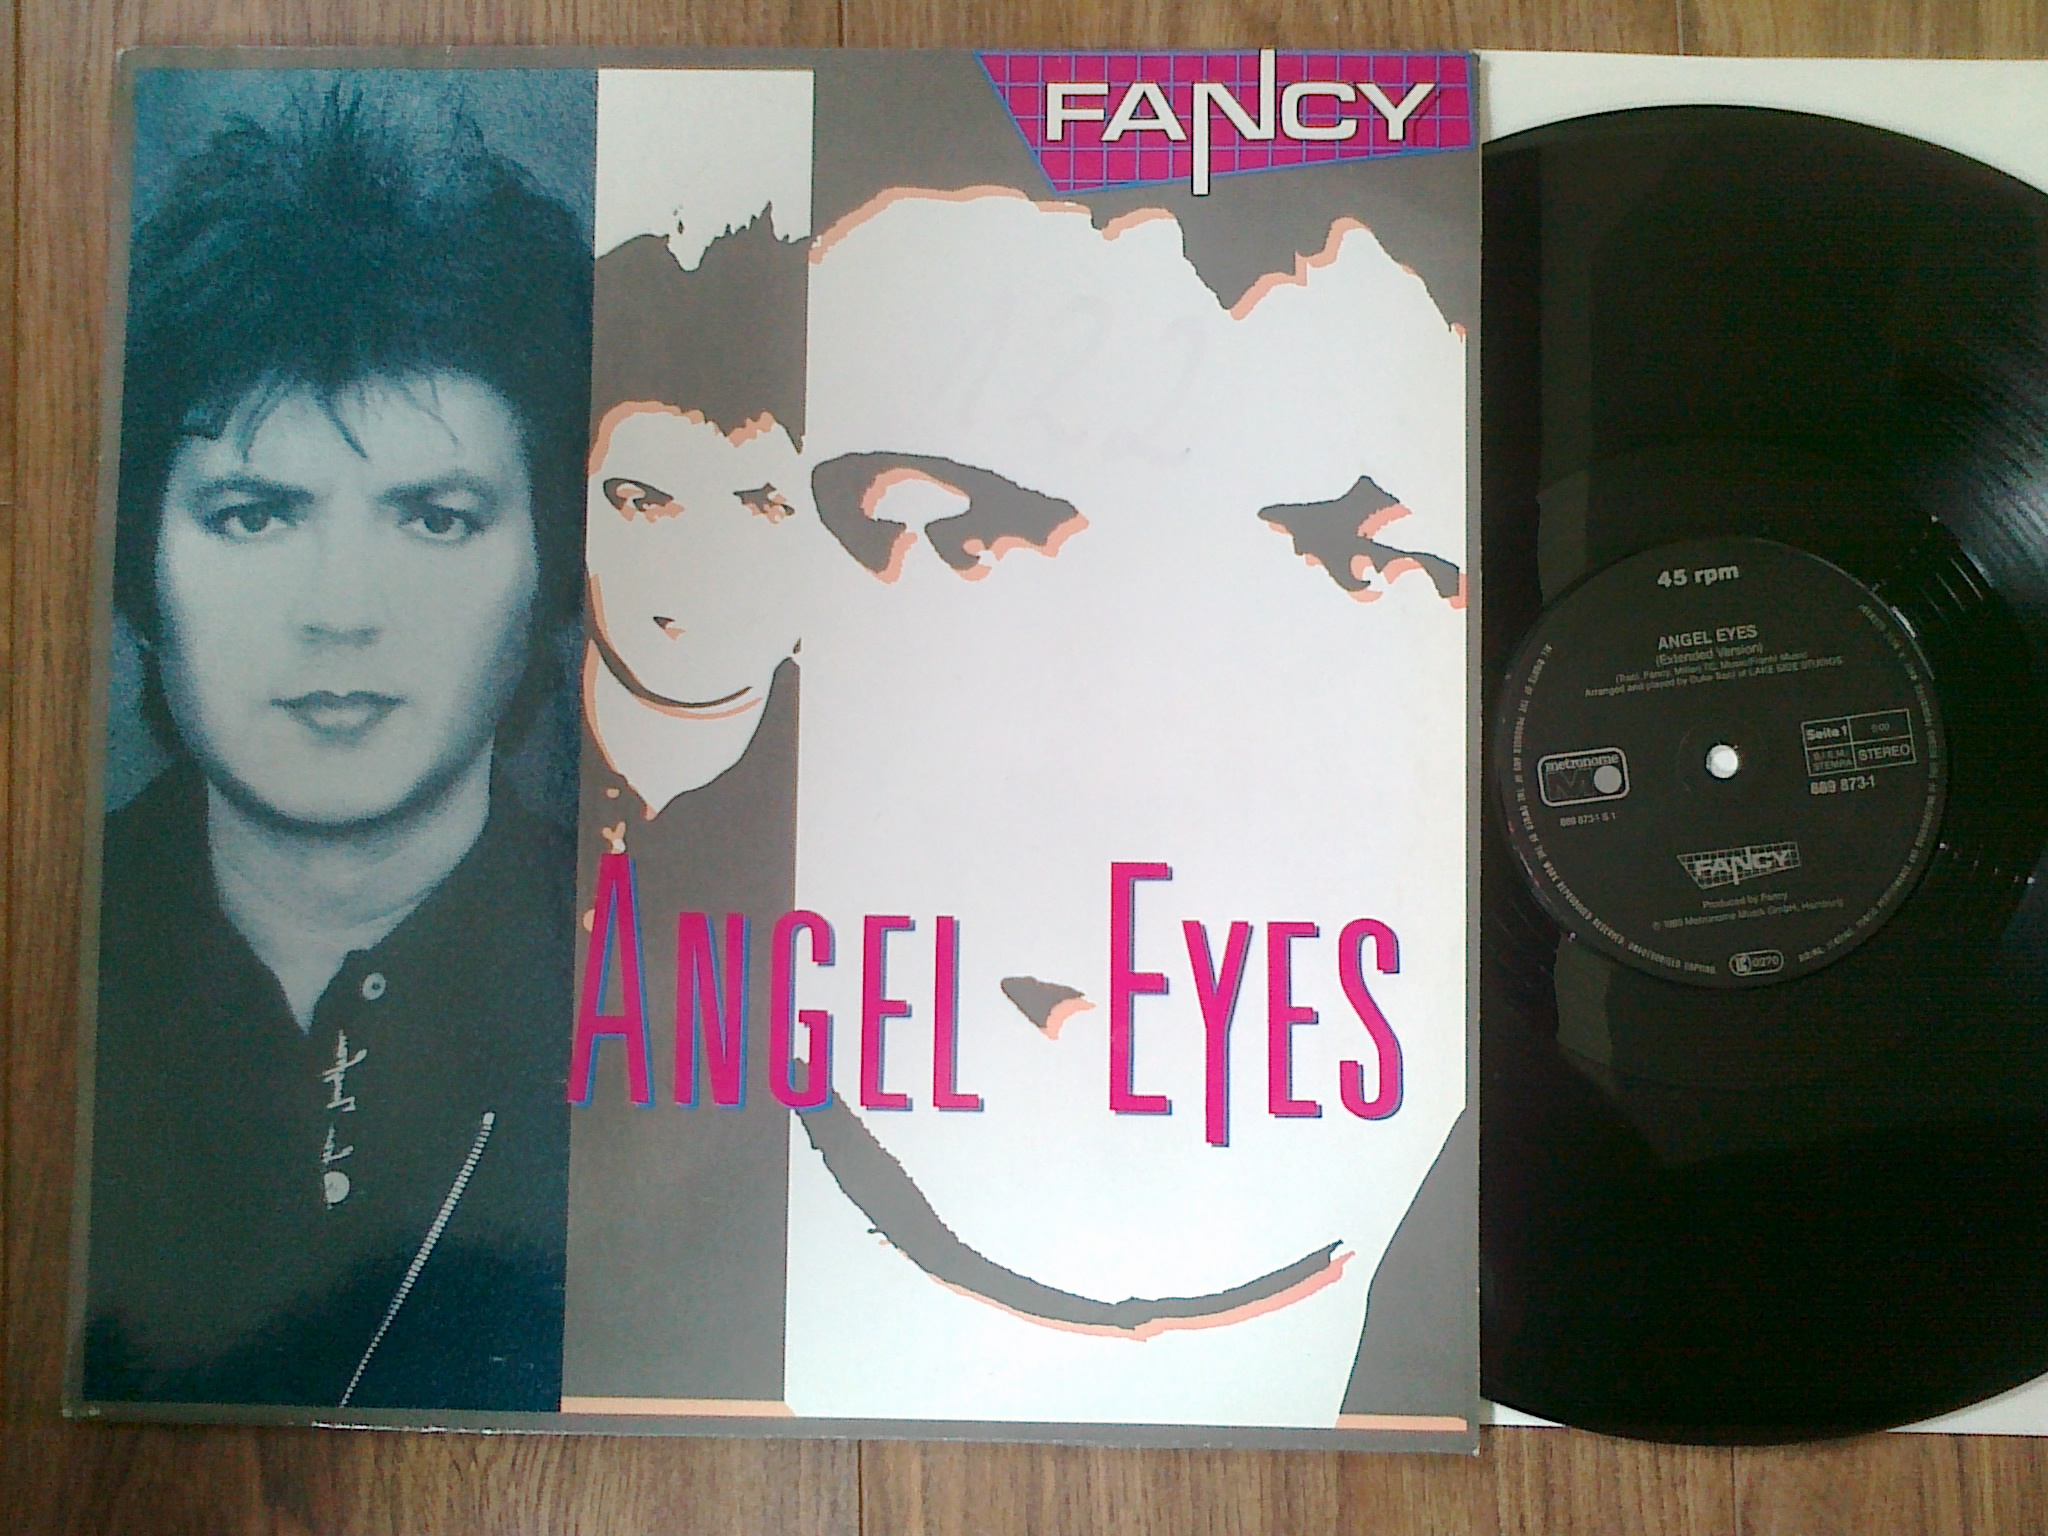 Fancy - Angel Eyes